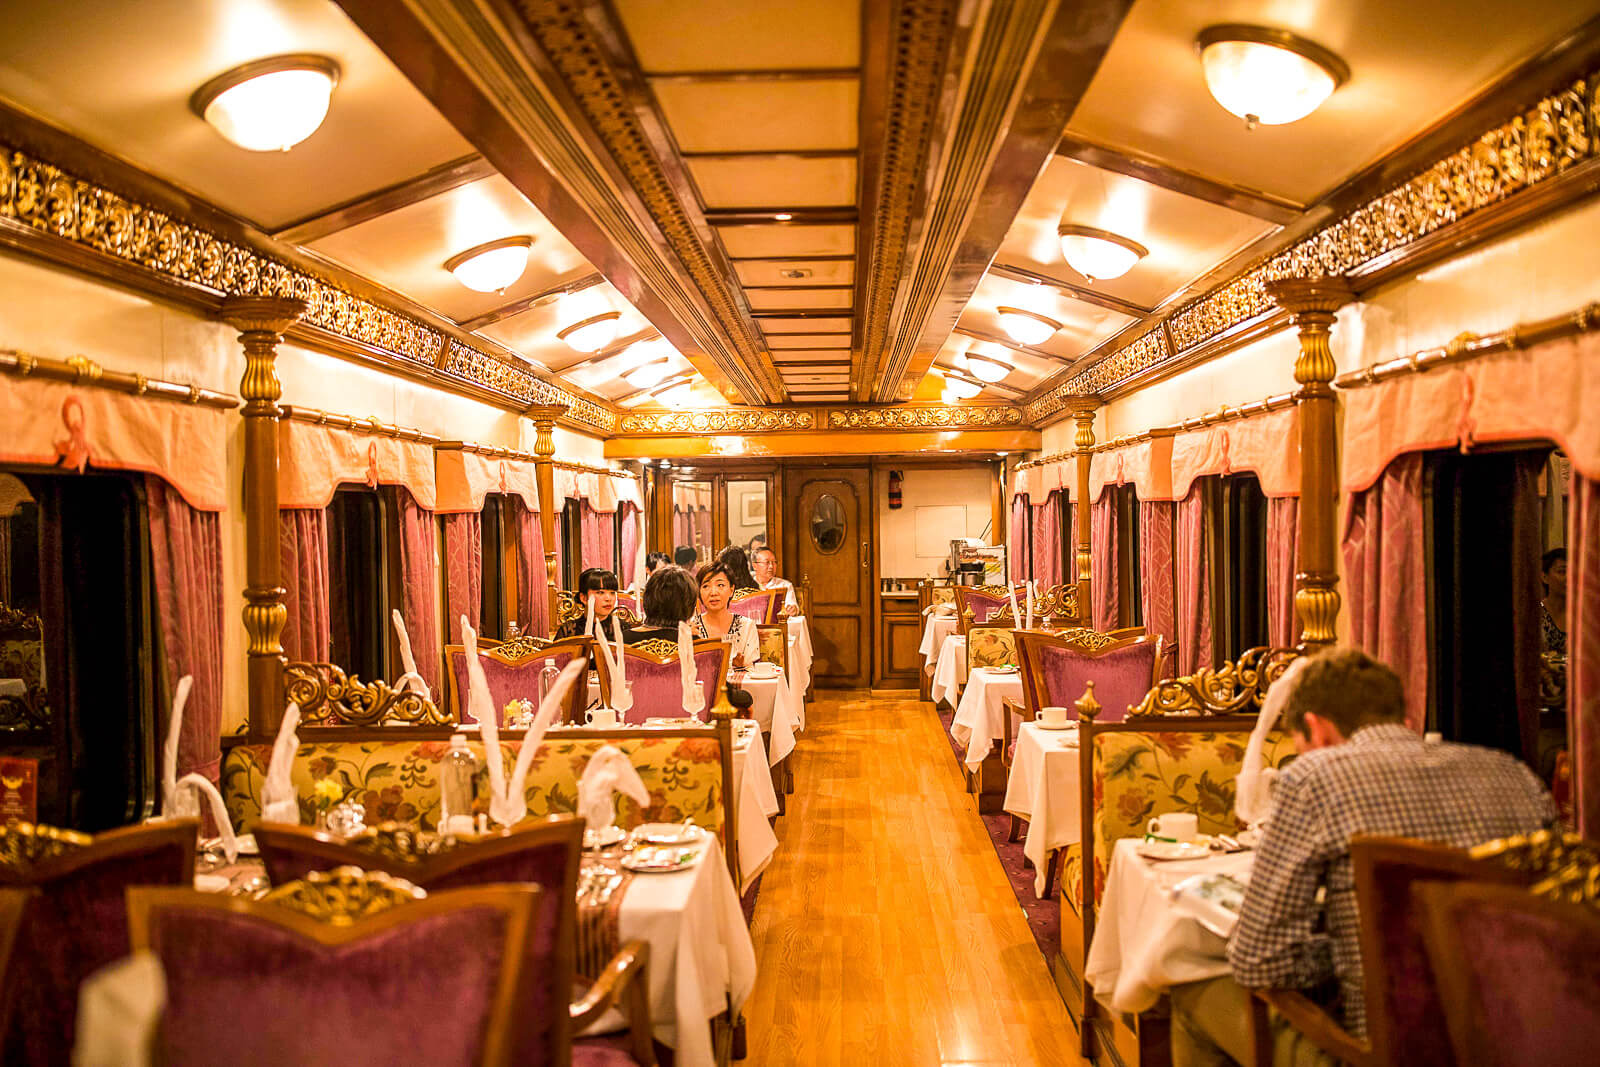 Inside the Golden Chariot, one of the Luxury Trains of India